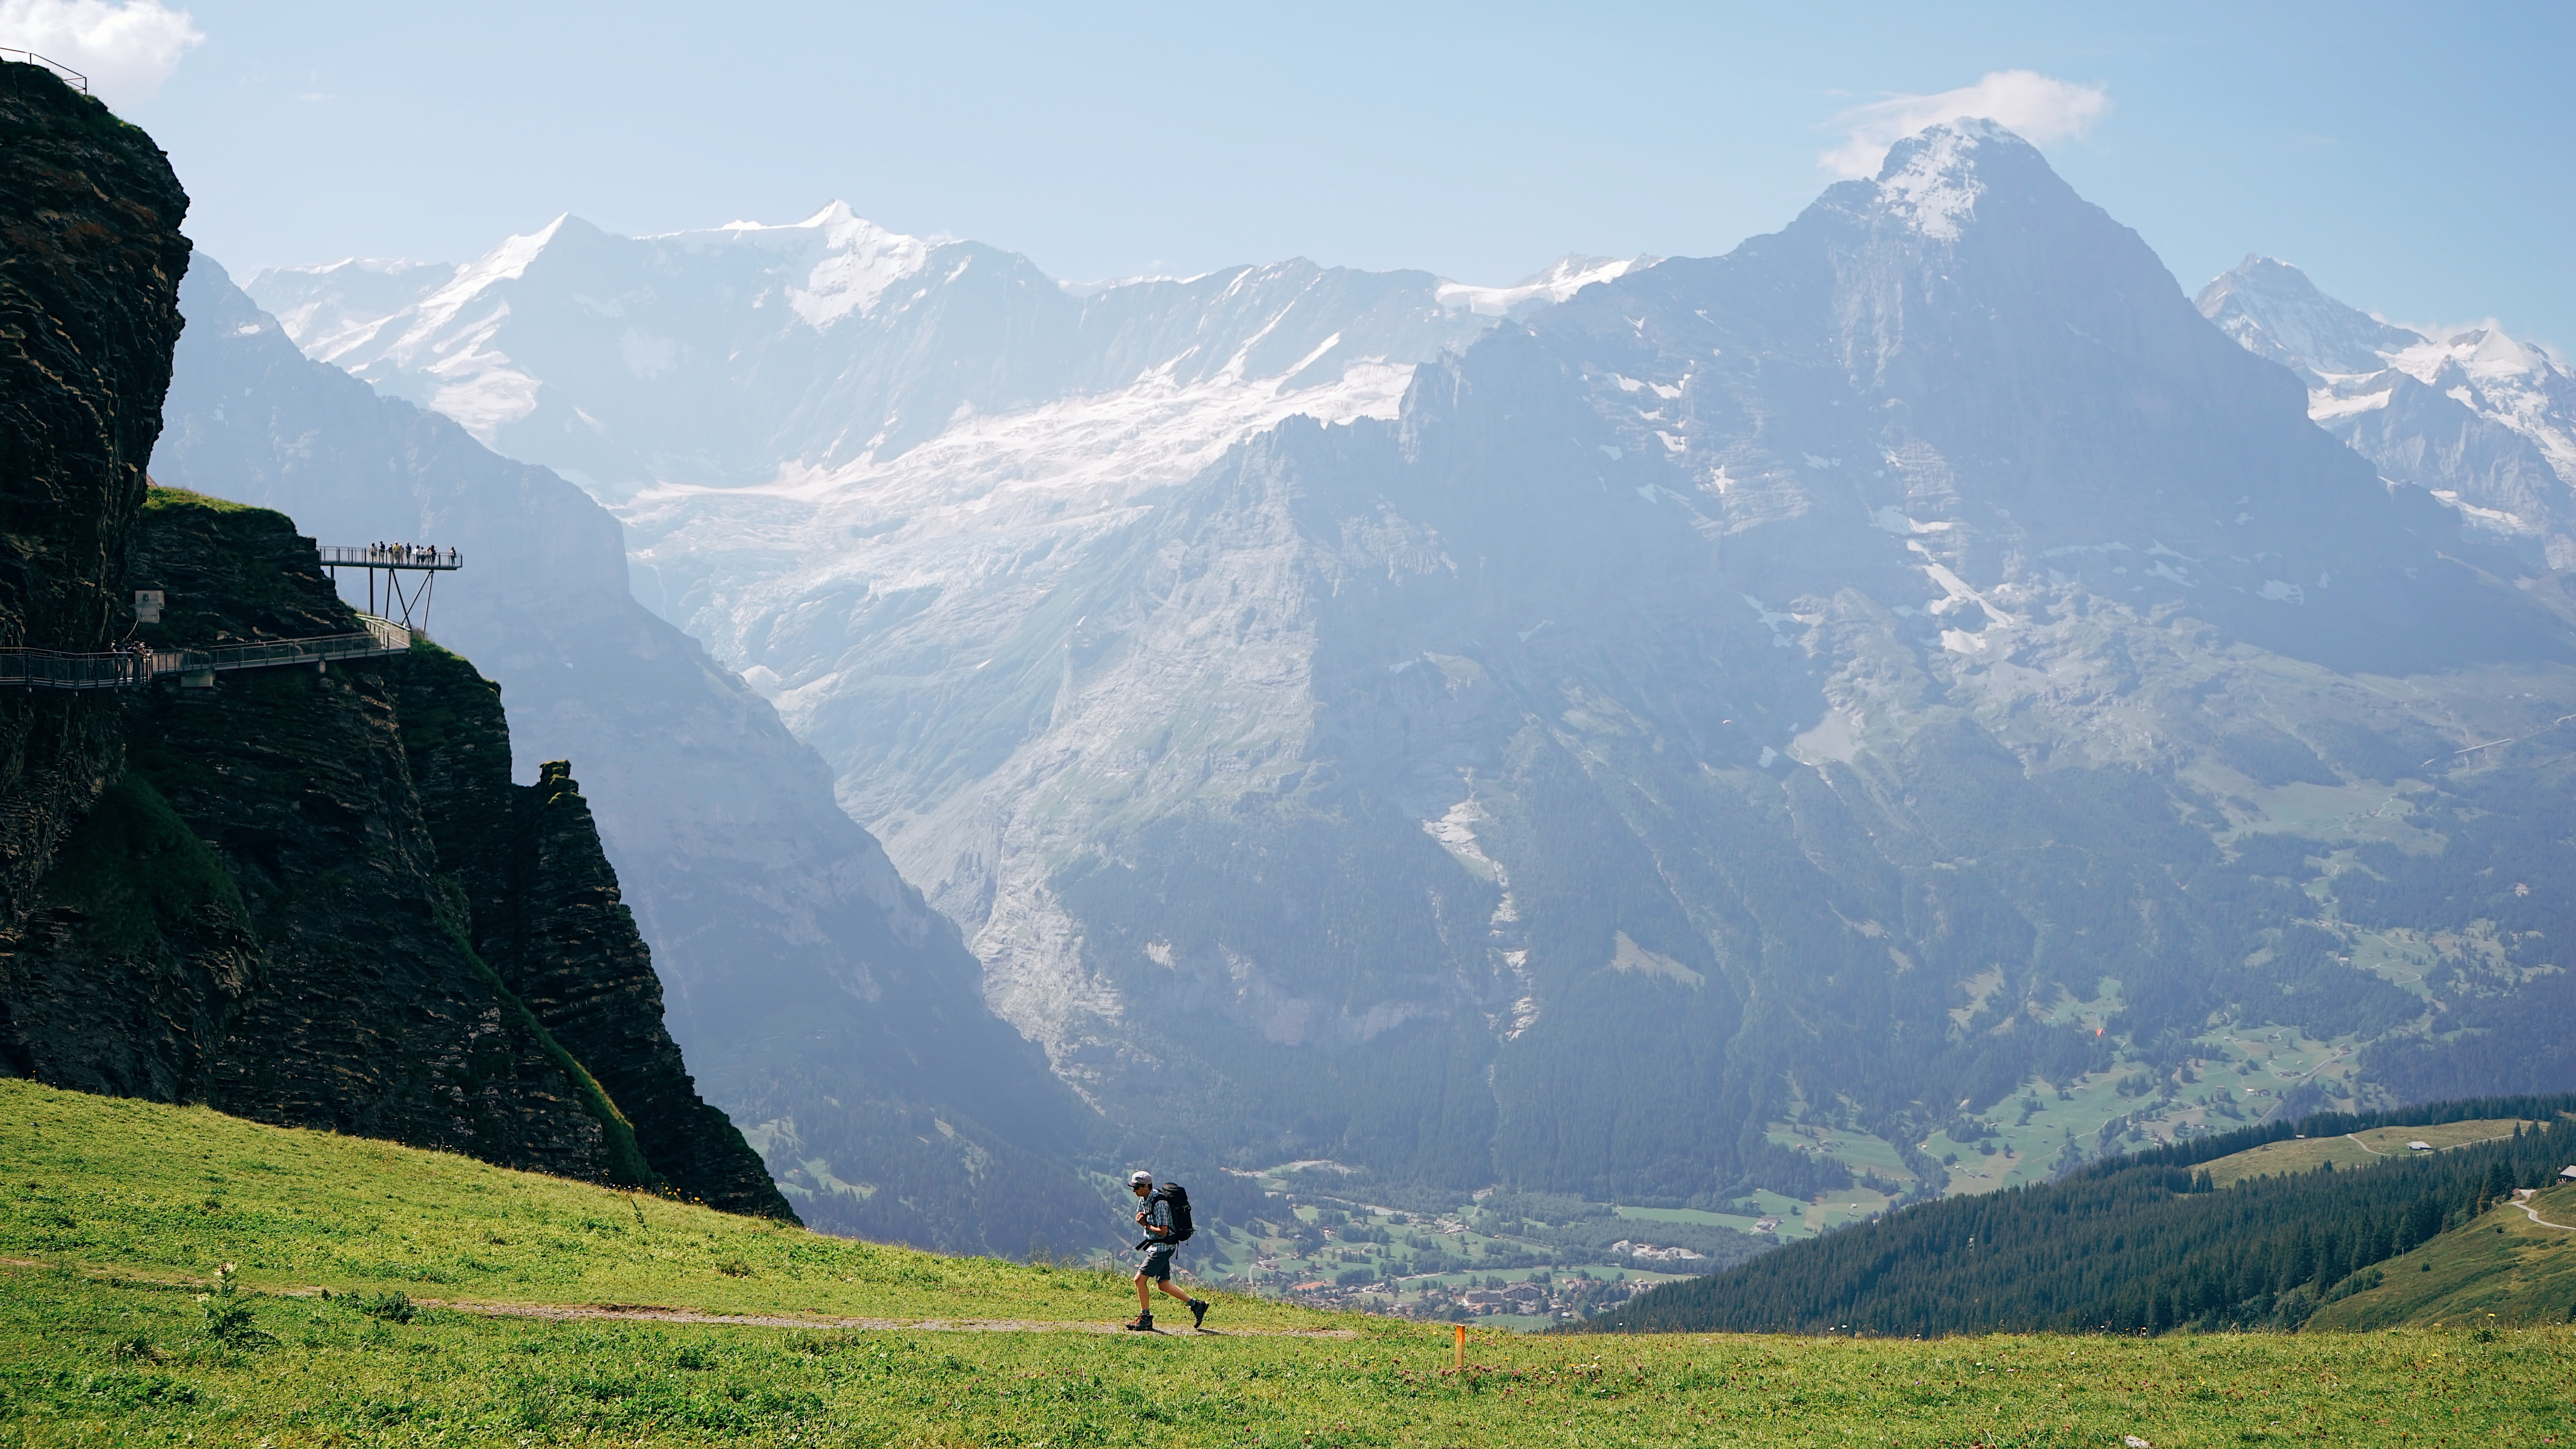 person hiking on mountain during daytime